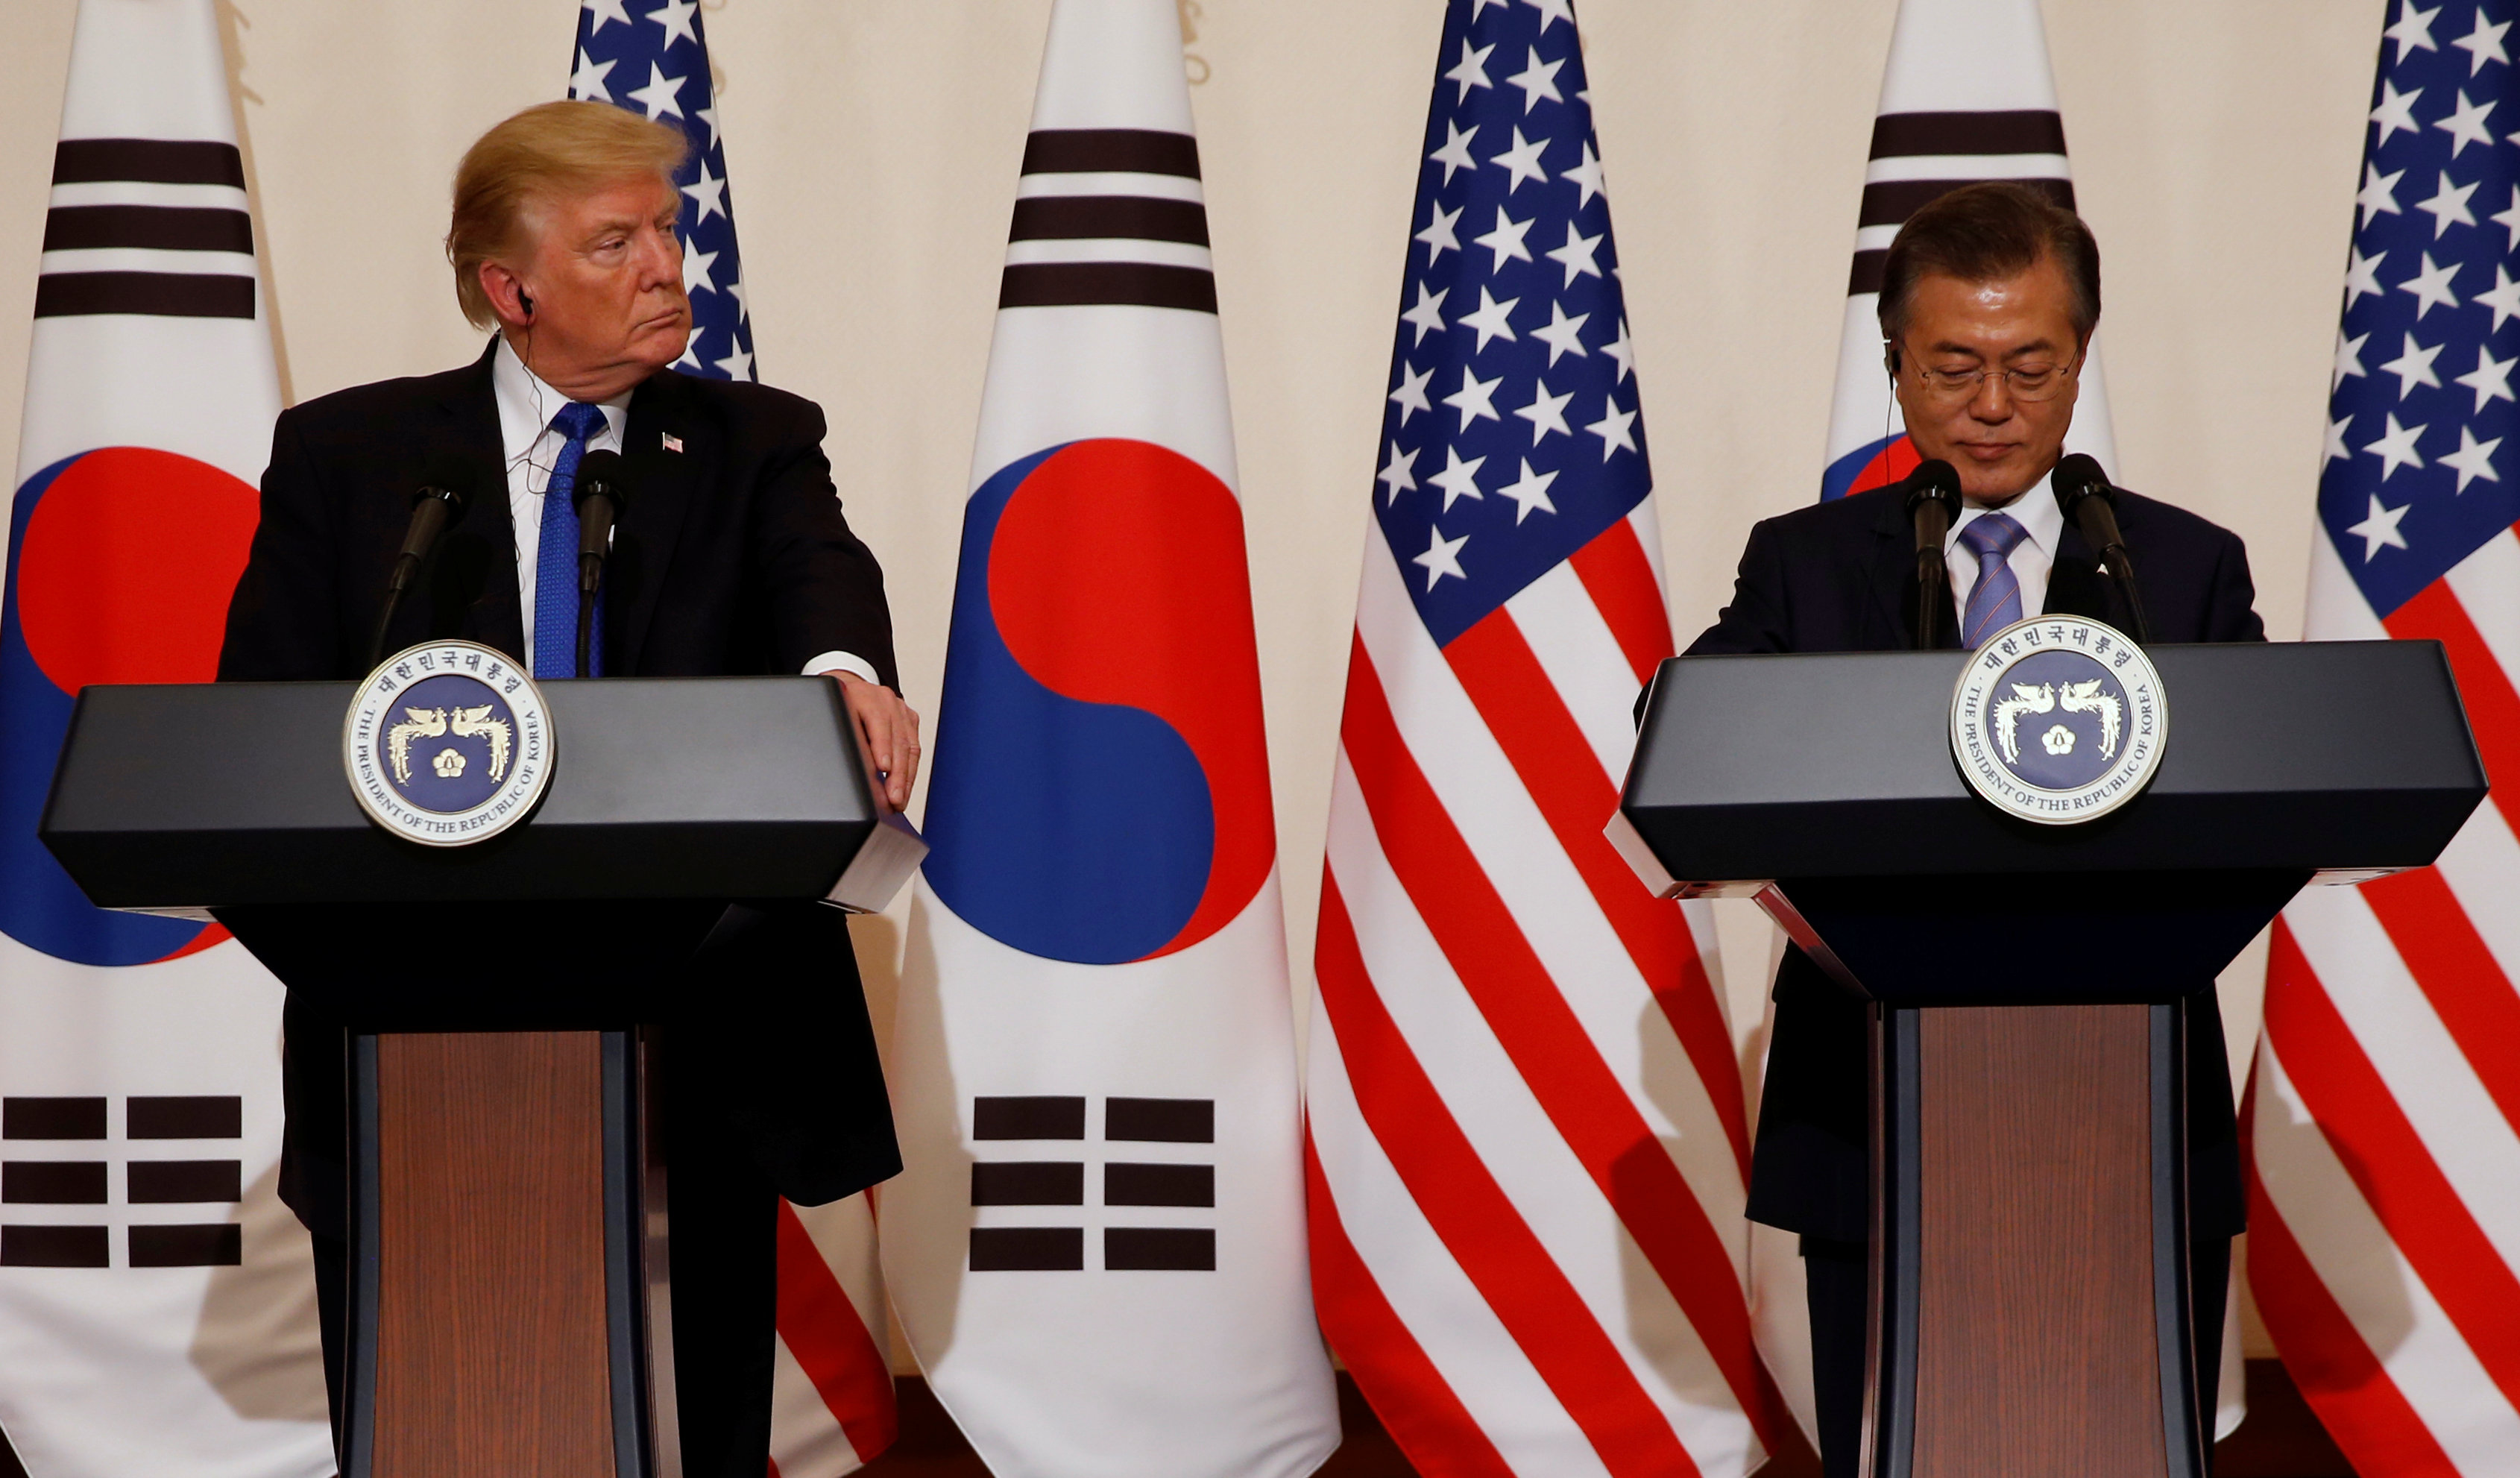 At North Korea's doorstep, Trump warns of U.S. power while also striking conciliatory note